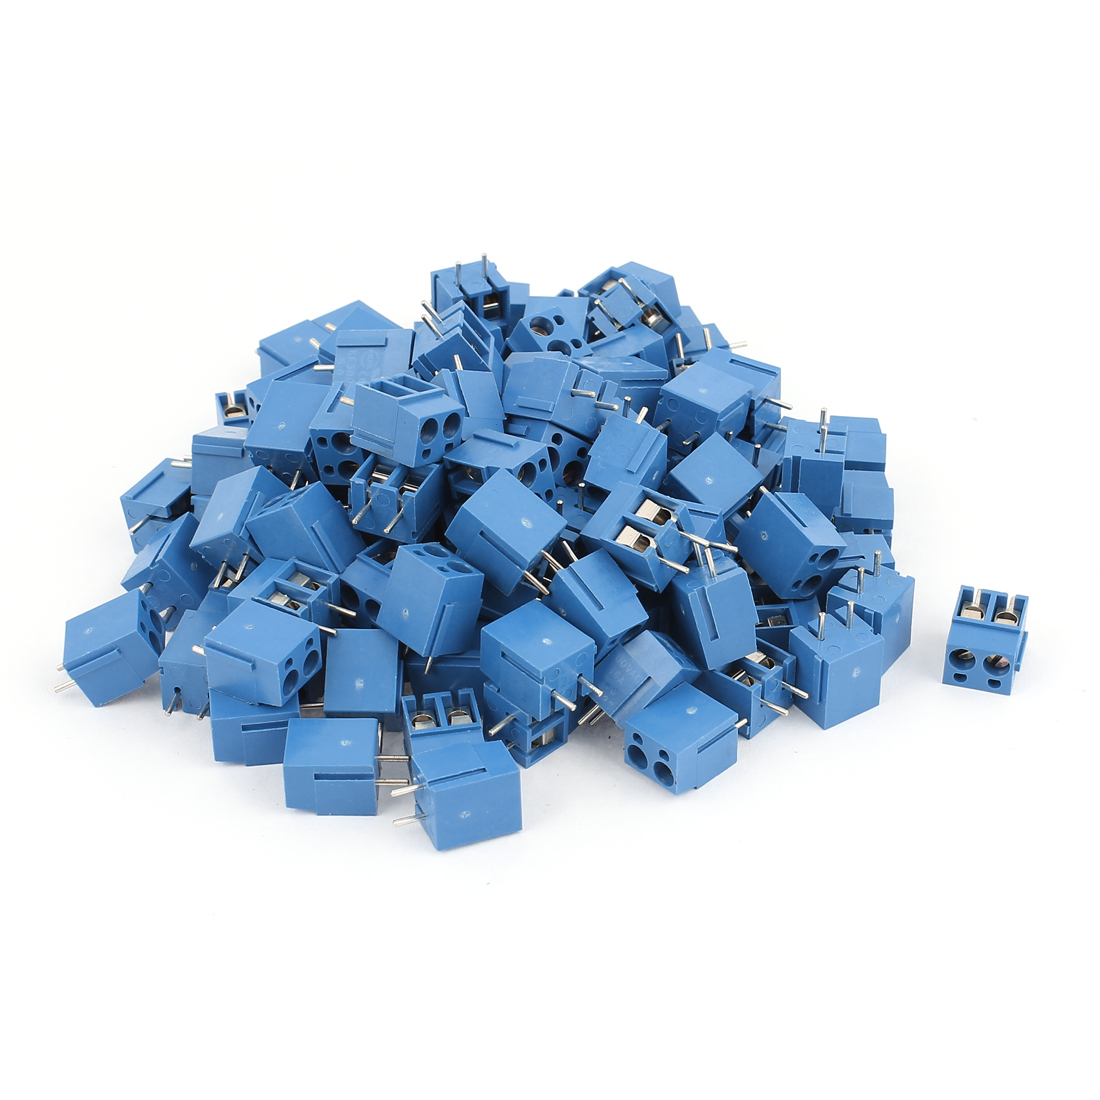 115 Pcs AC300V 16A 2 positions 1mm Pitch Pluggable Terminal Block Blue